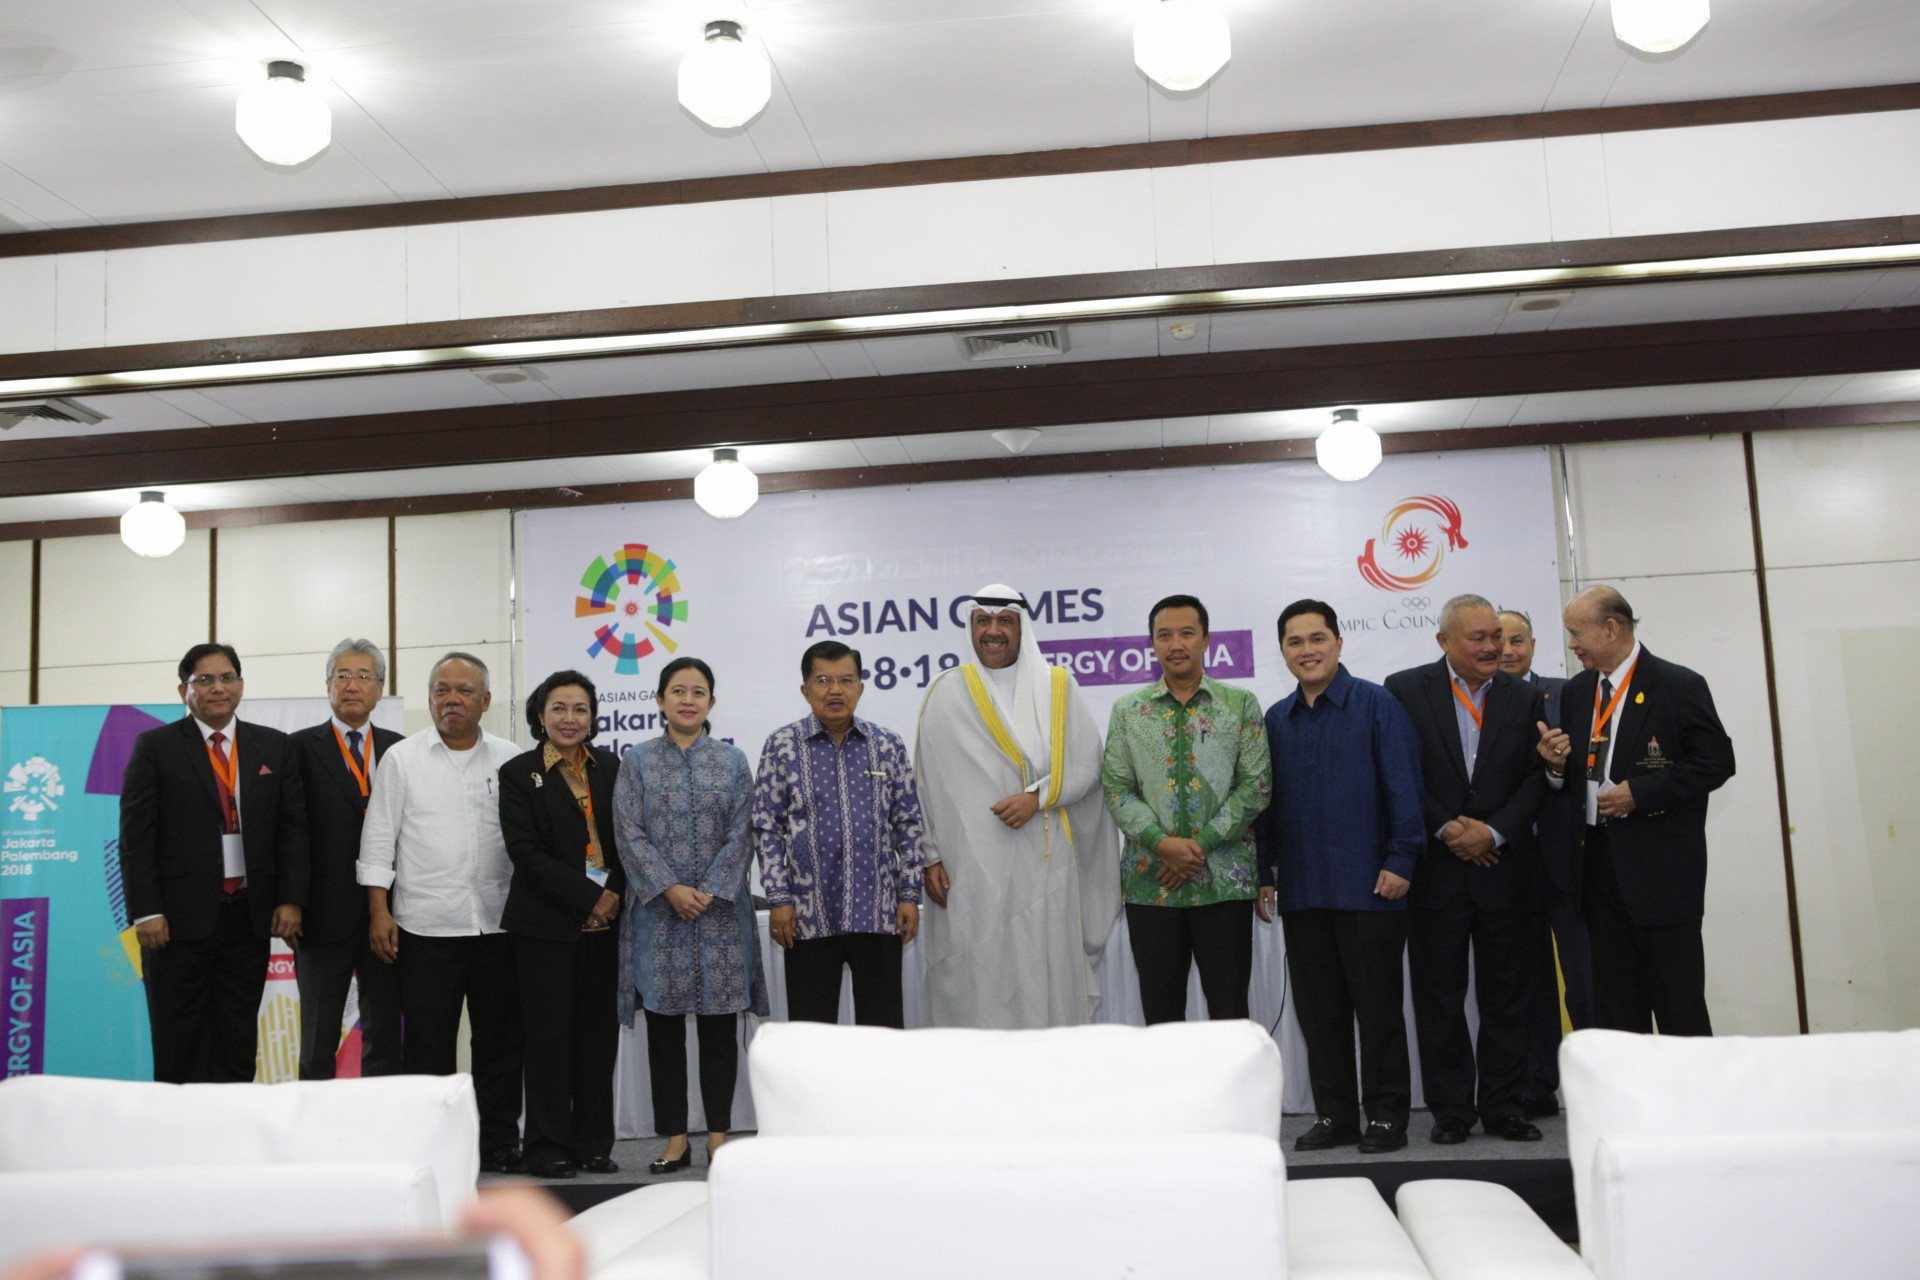 OCA and Jakarta 2018 sign marketing deal as three sponsors signed up for Asian Games